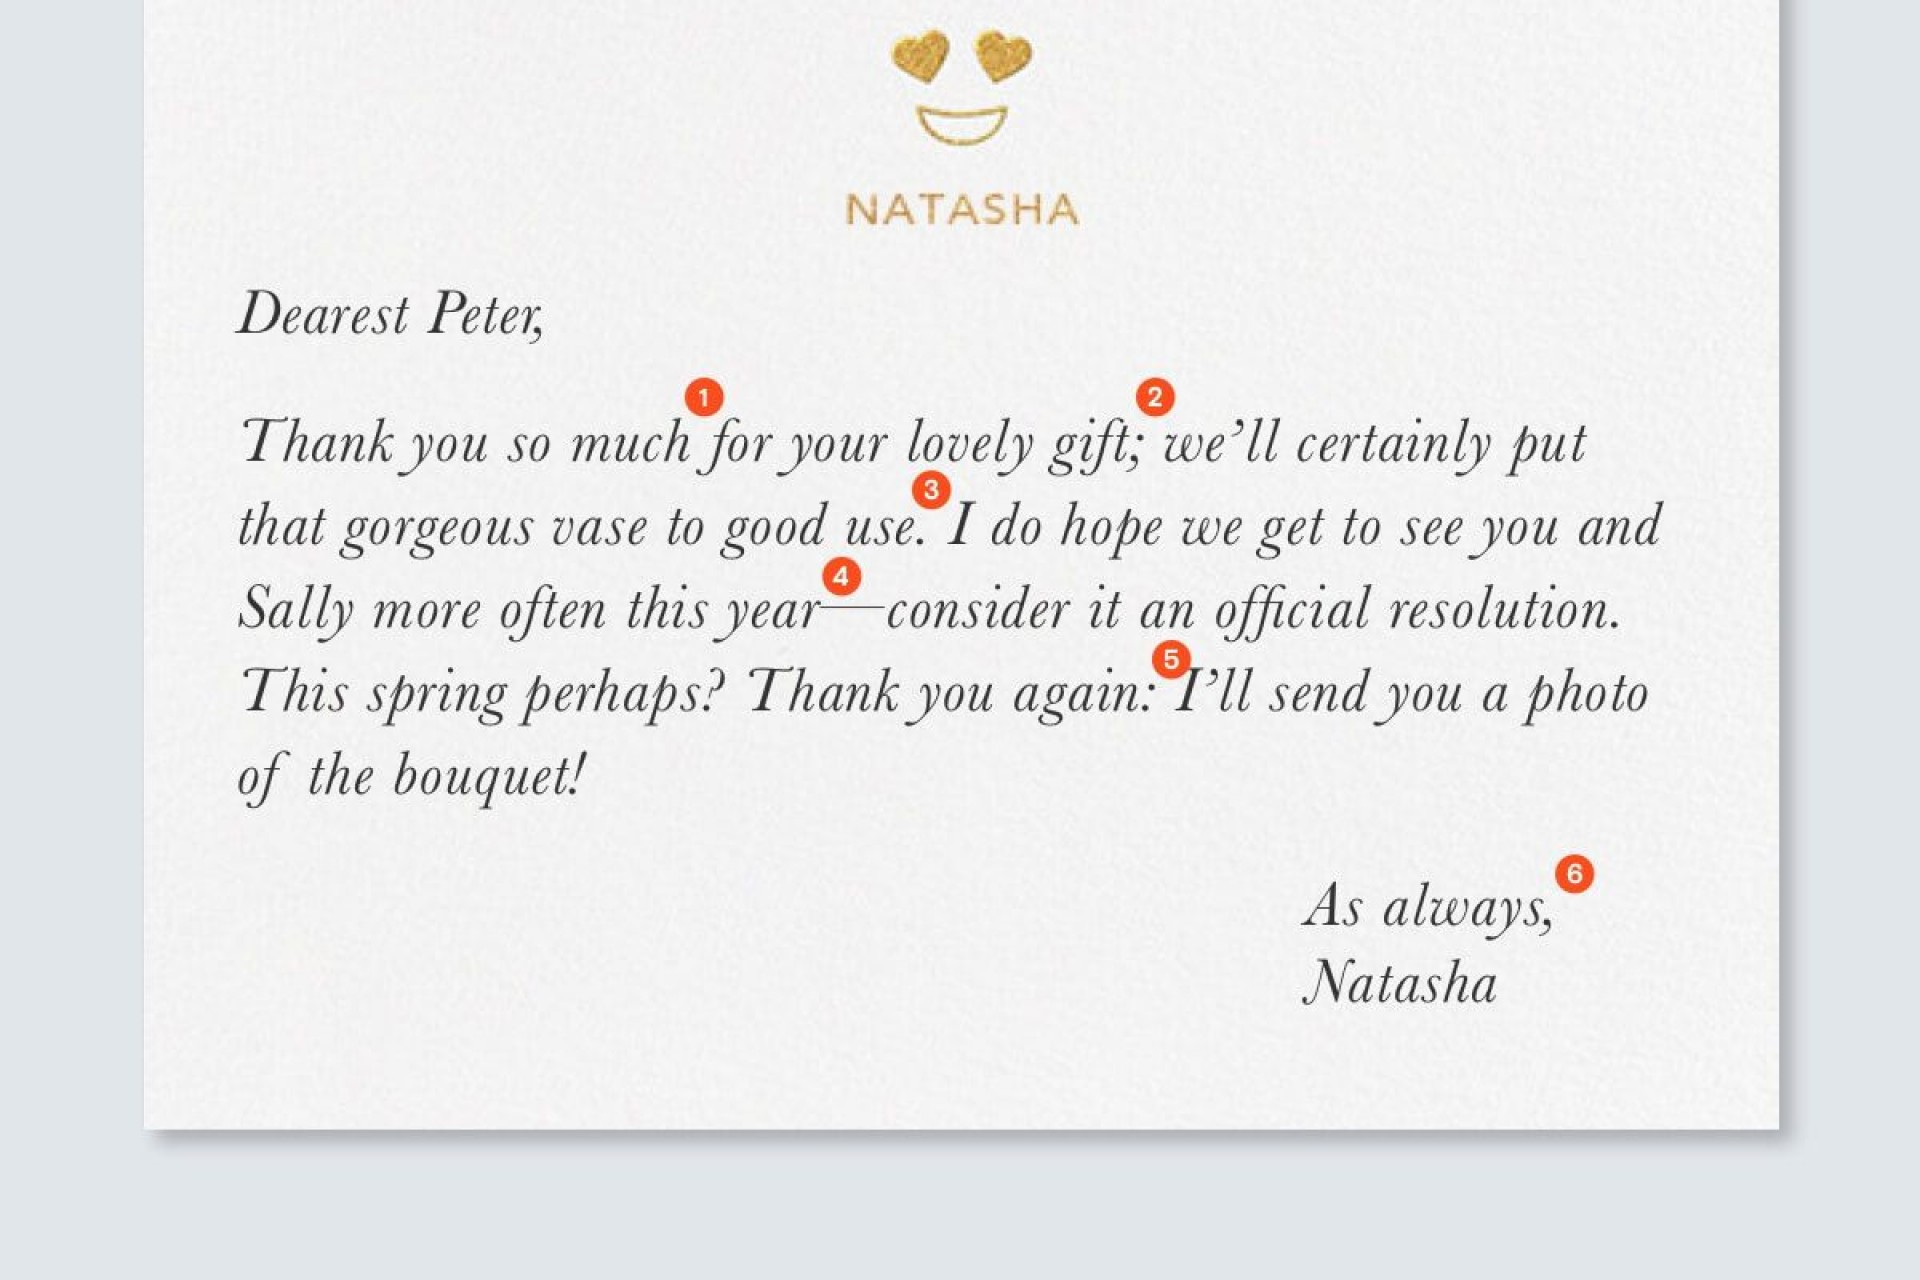 005 Breathtaking Thank You Note Template For Money Highest Quality  Card Wording Wedding Example Donation Graduation1920